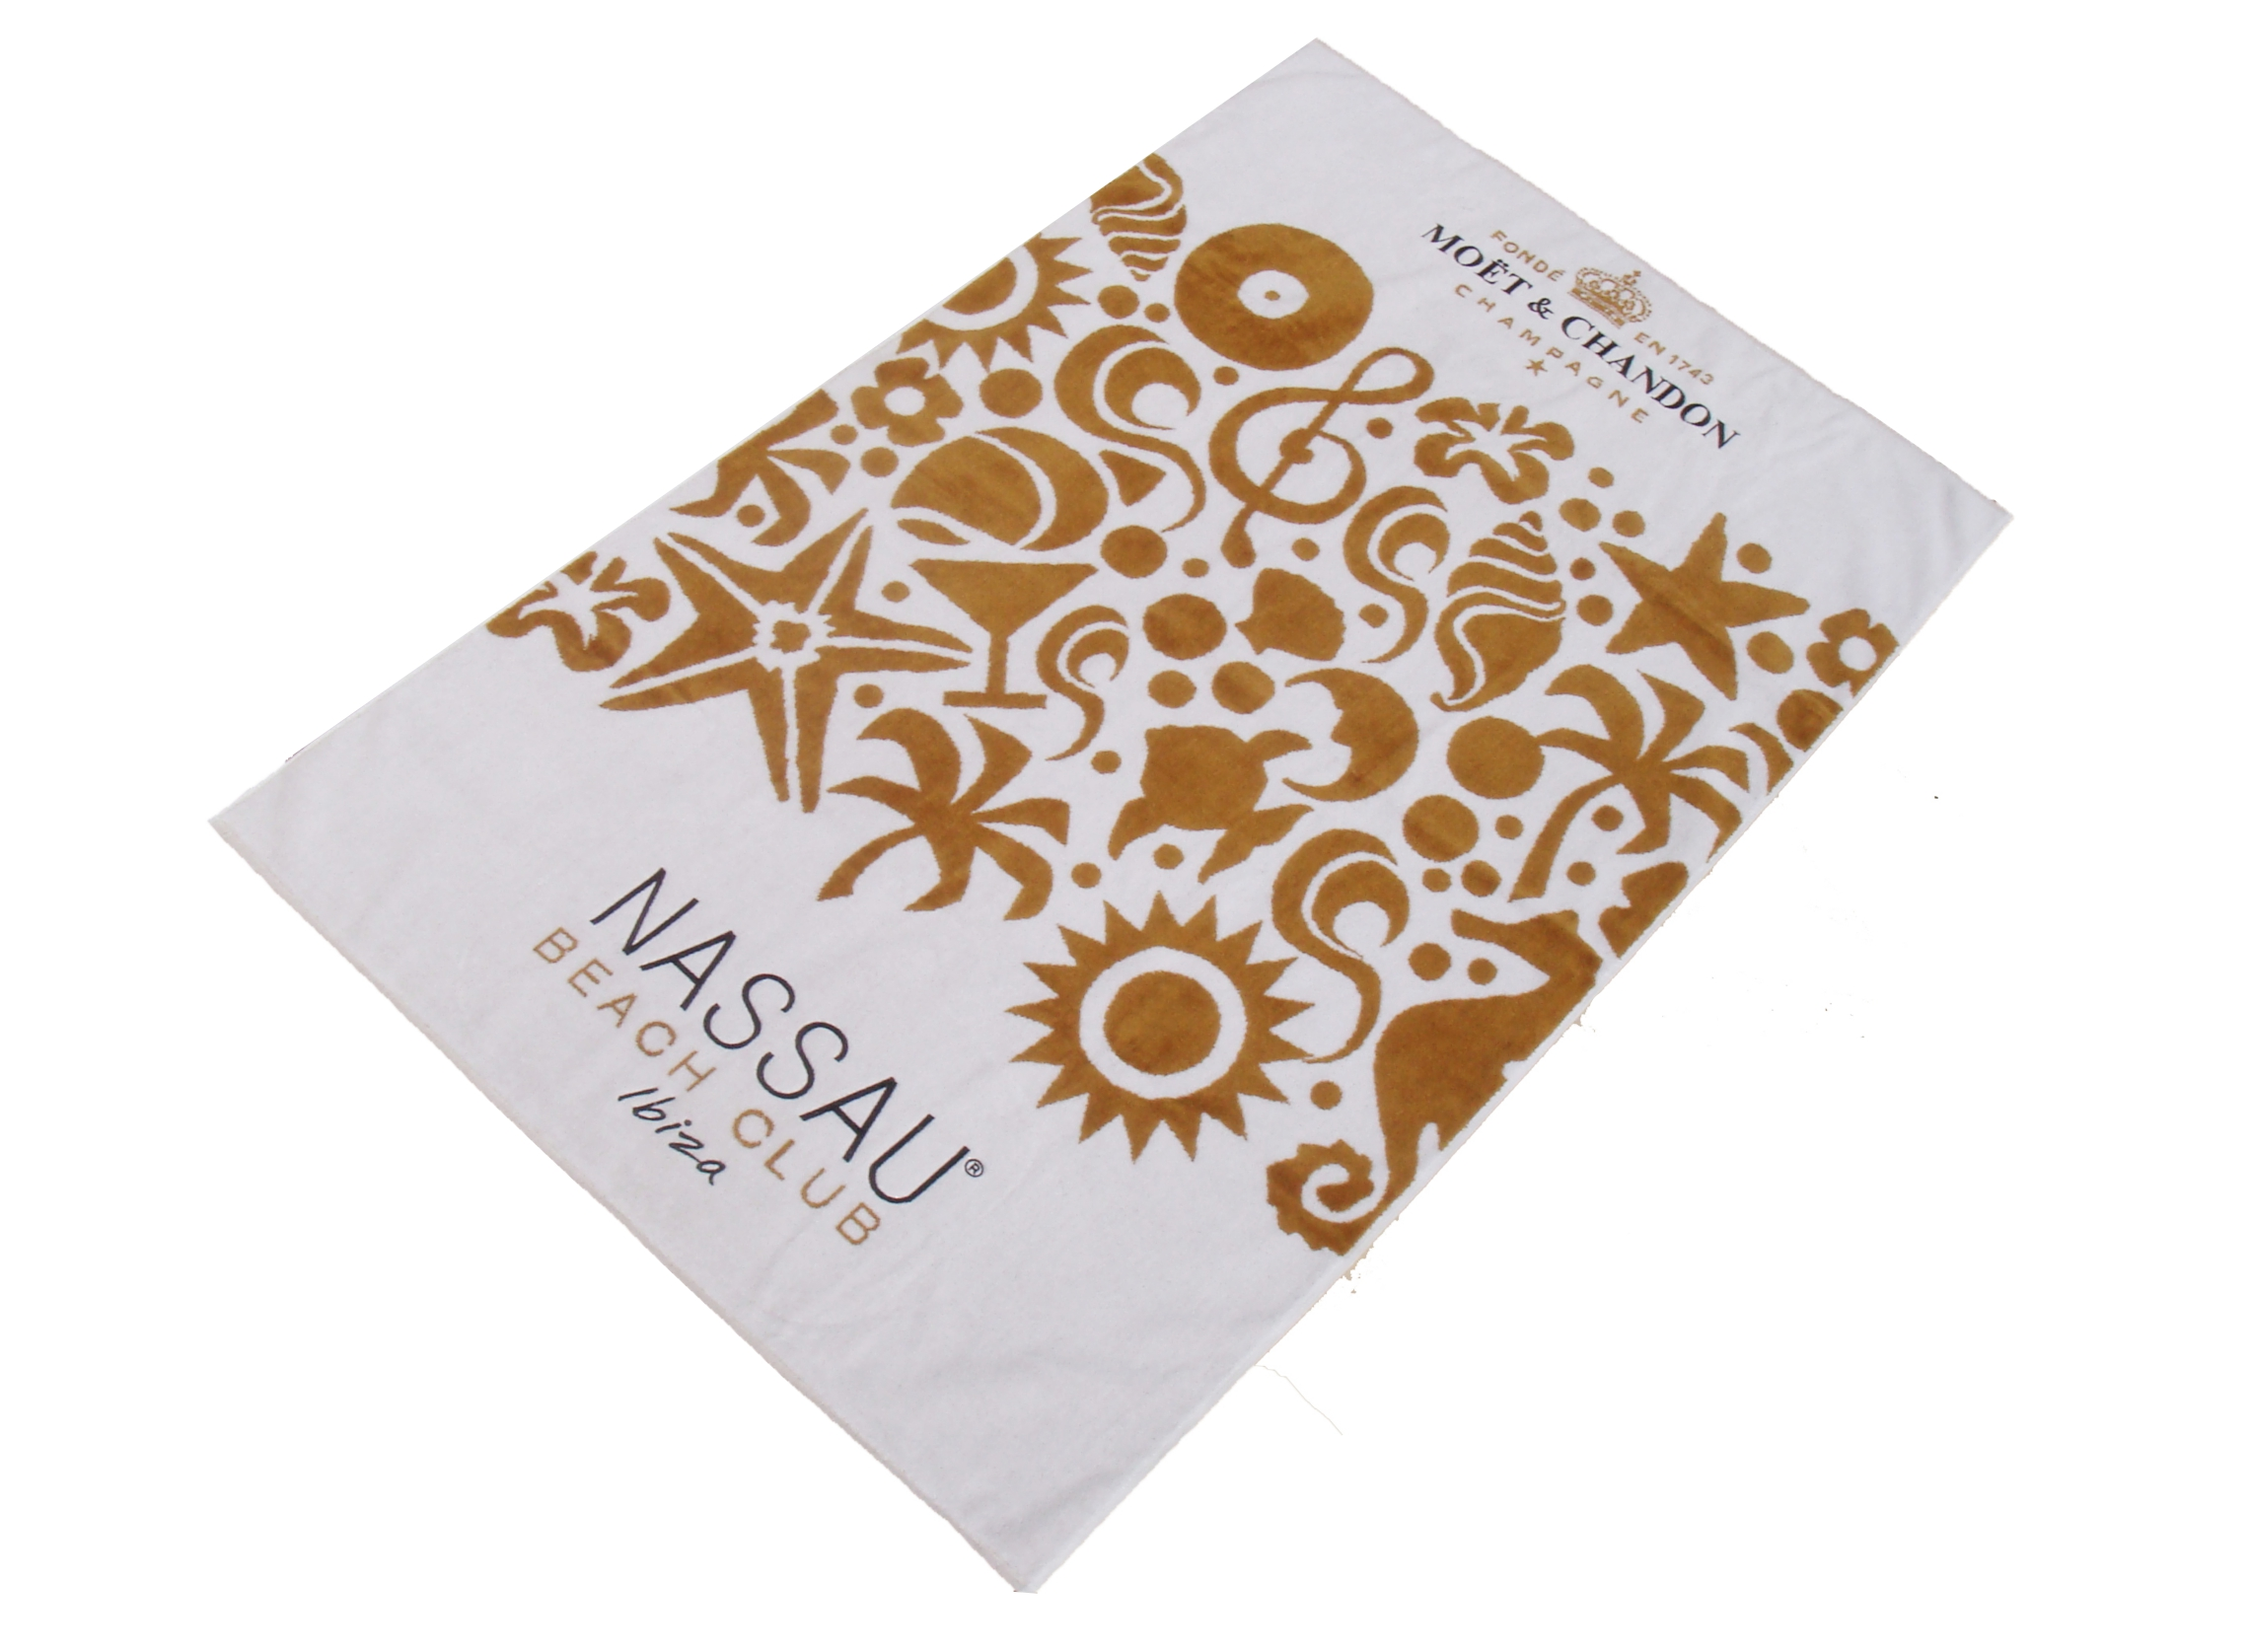 Nassau Beach Club Ibiza Moet towel with velour finish.jpg